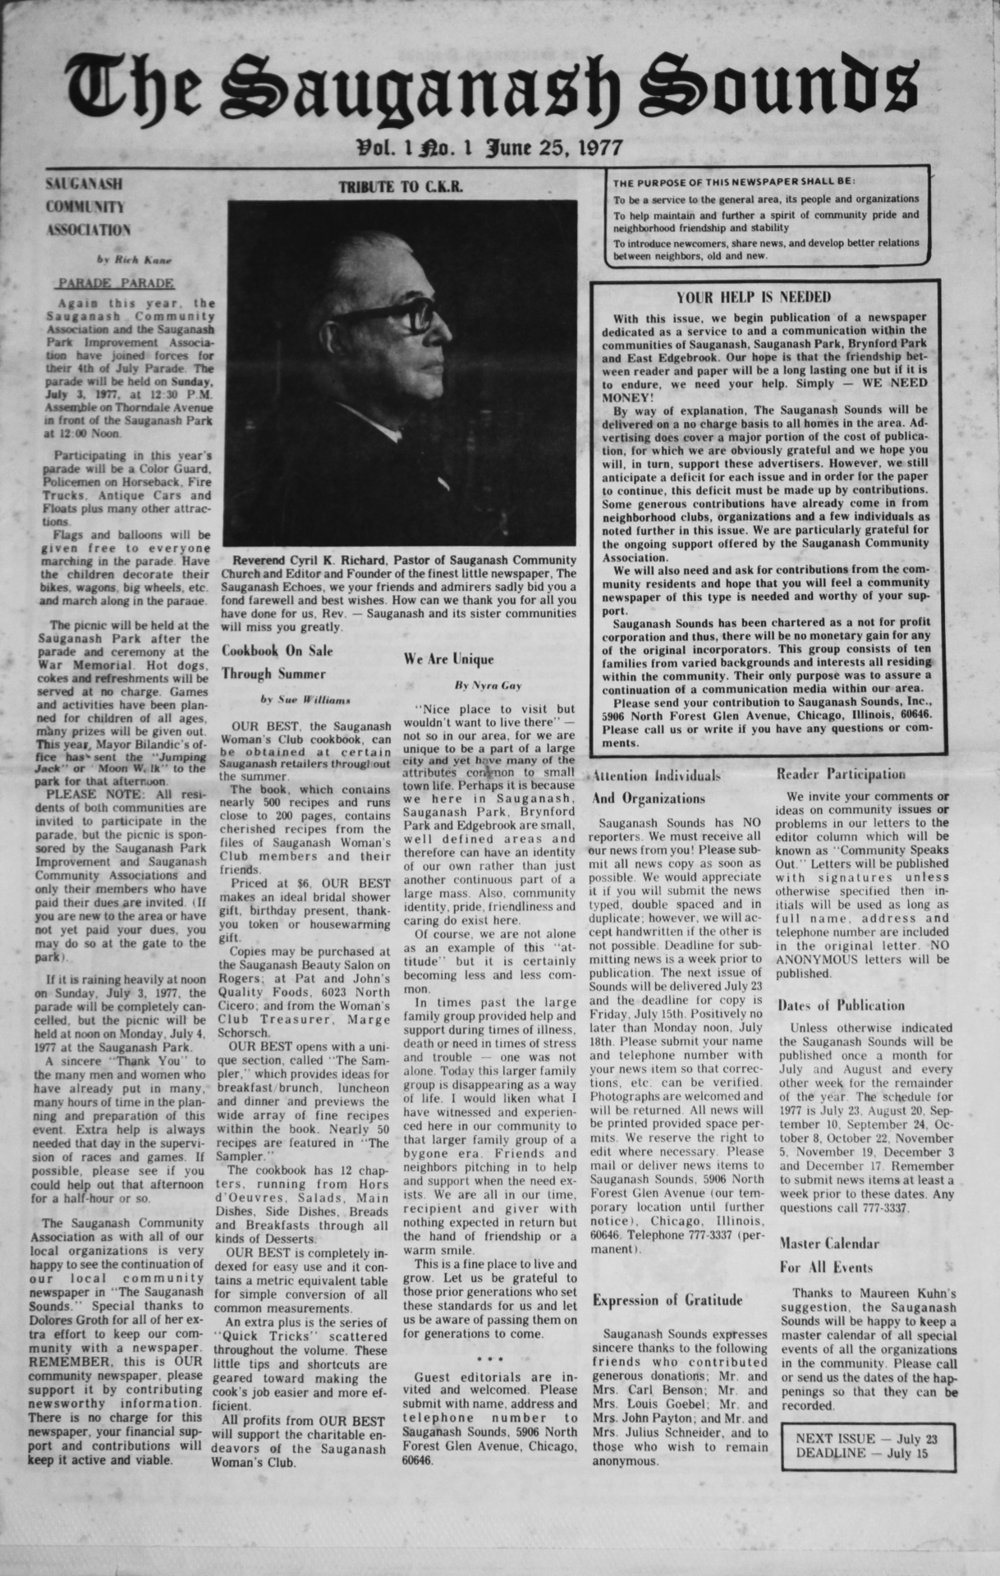 First issue in 1977